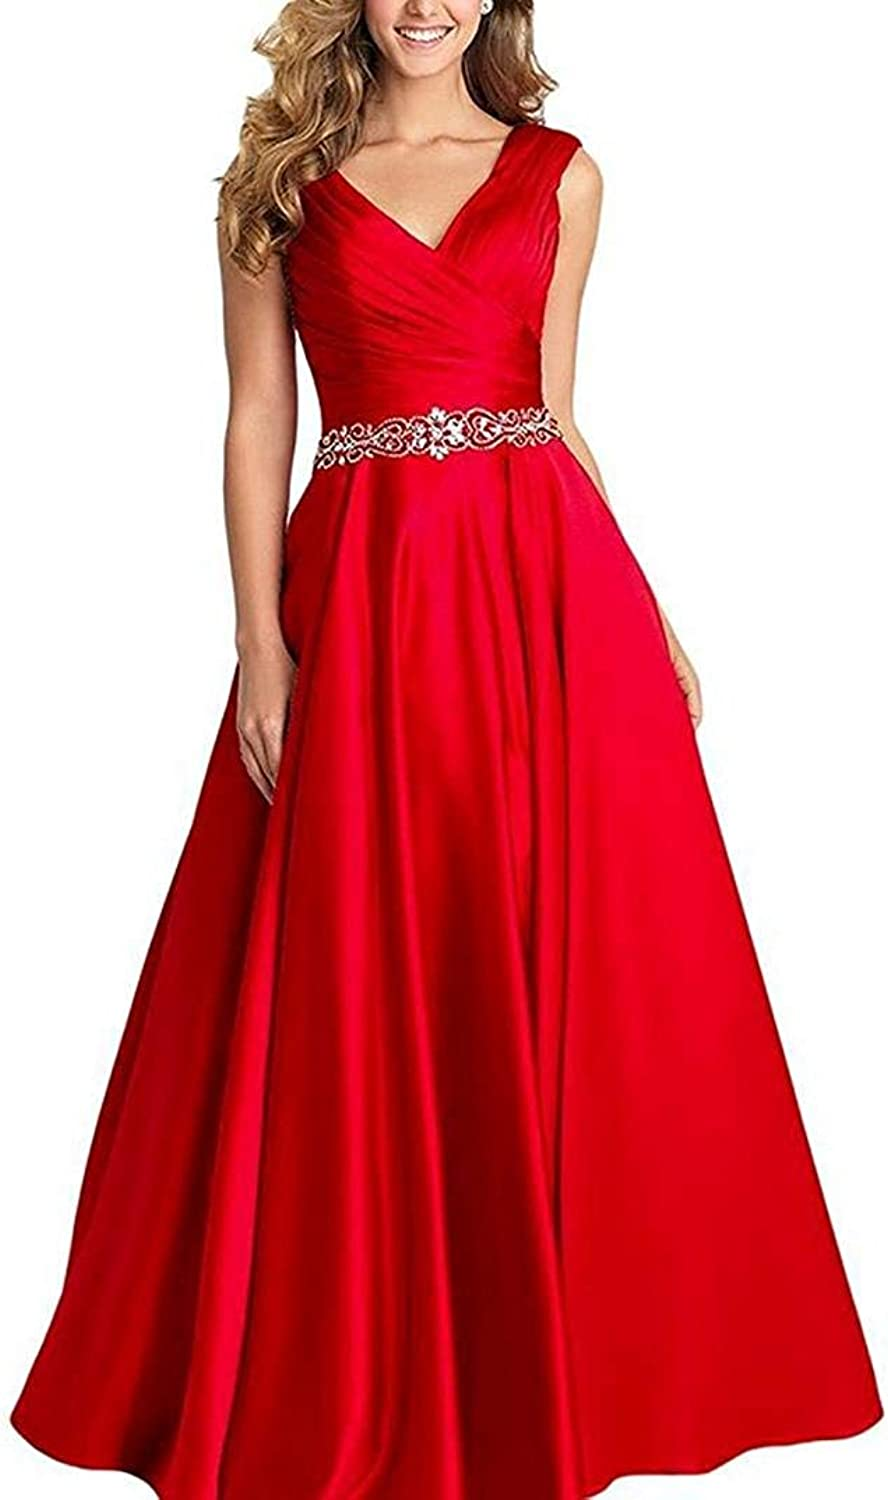 LiBridal Women's Sexy V Neck Satin Prom Evening Dress Formal Beaded Sleeveless Gowns